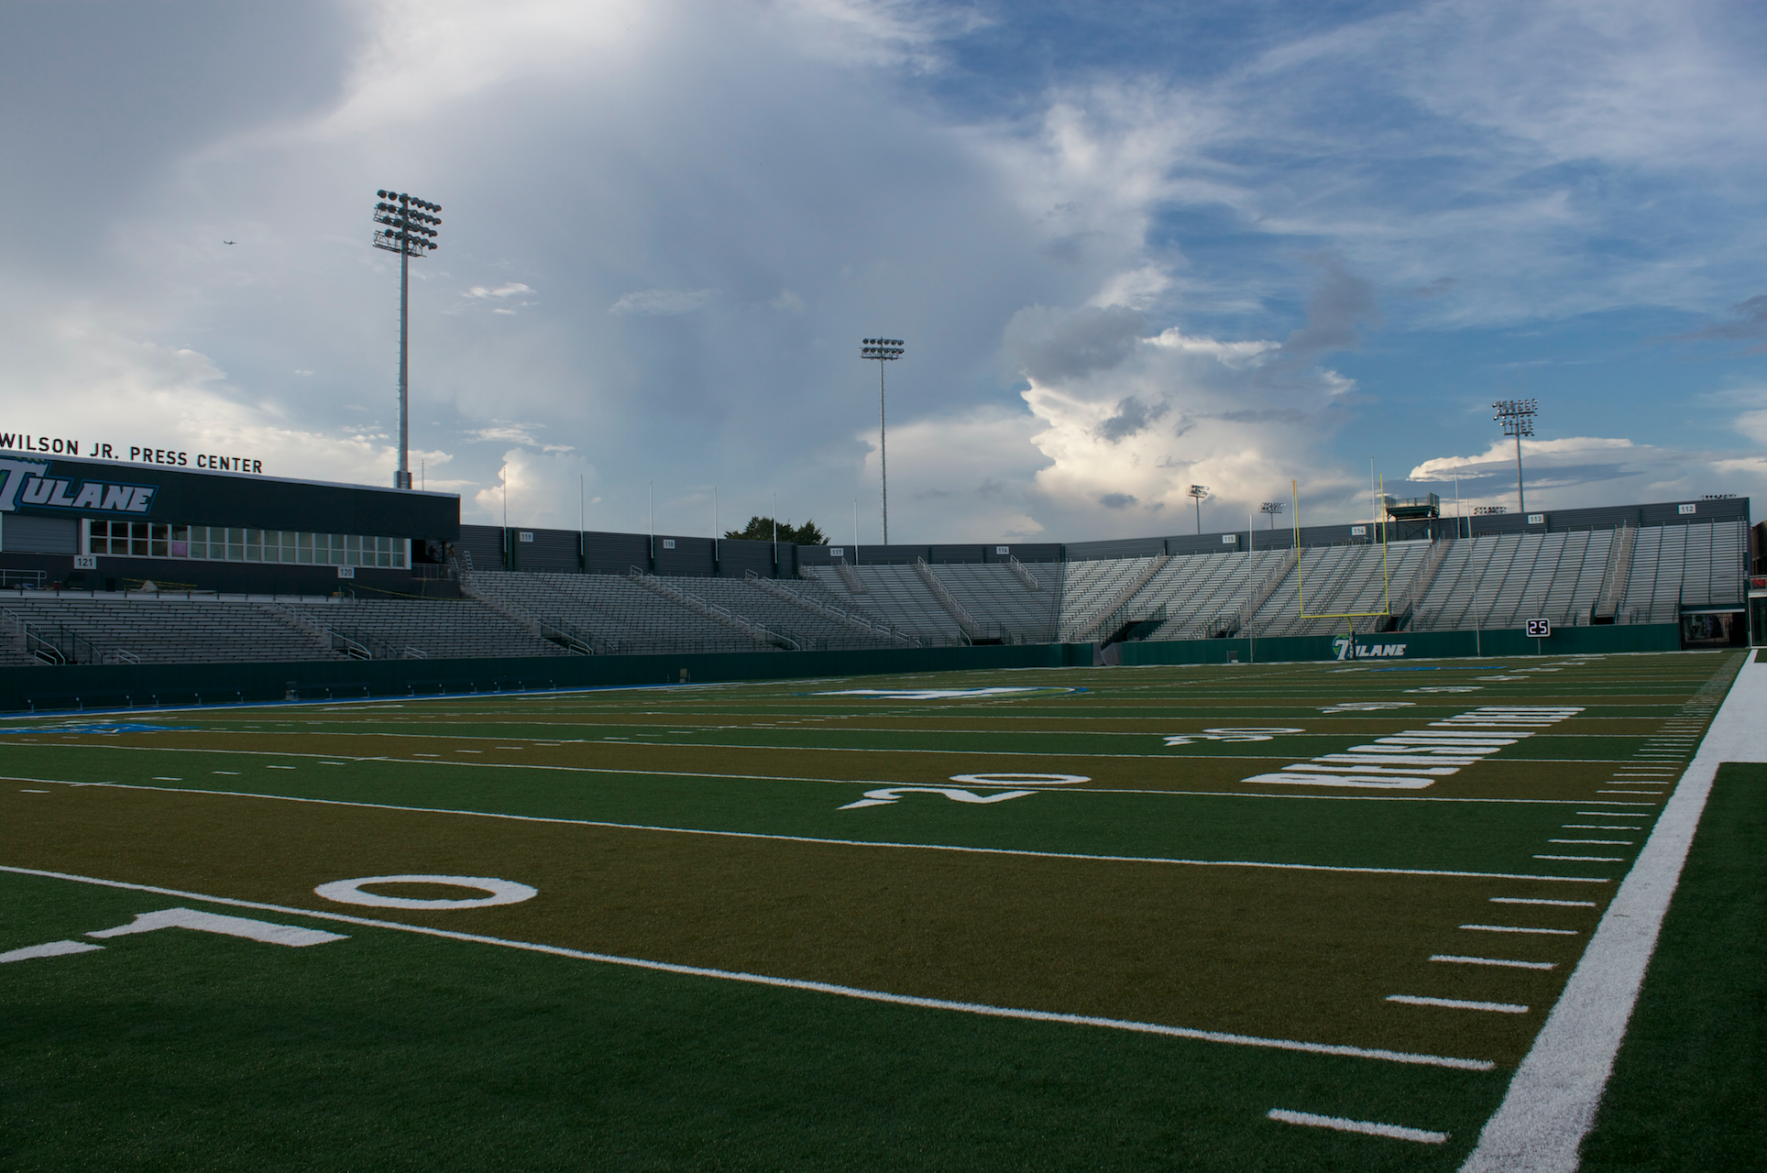 Yulman Stadium was built on Tulane's campus in 2013 and hosts the Green Wave home football games. With Donald Peter's $2.5 million dollar contribution to athletics, facilities like Yulman and the adjoining Reily Center may soon get an upgrade.